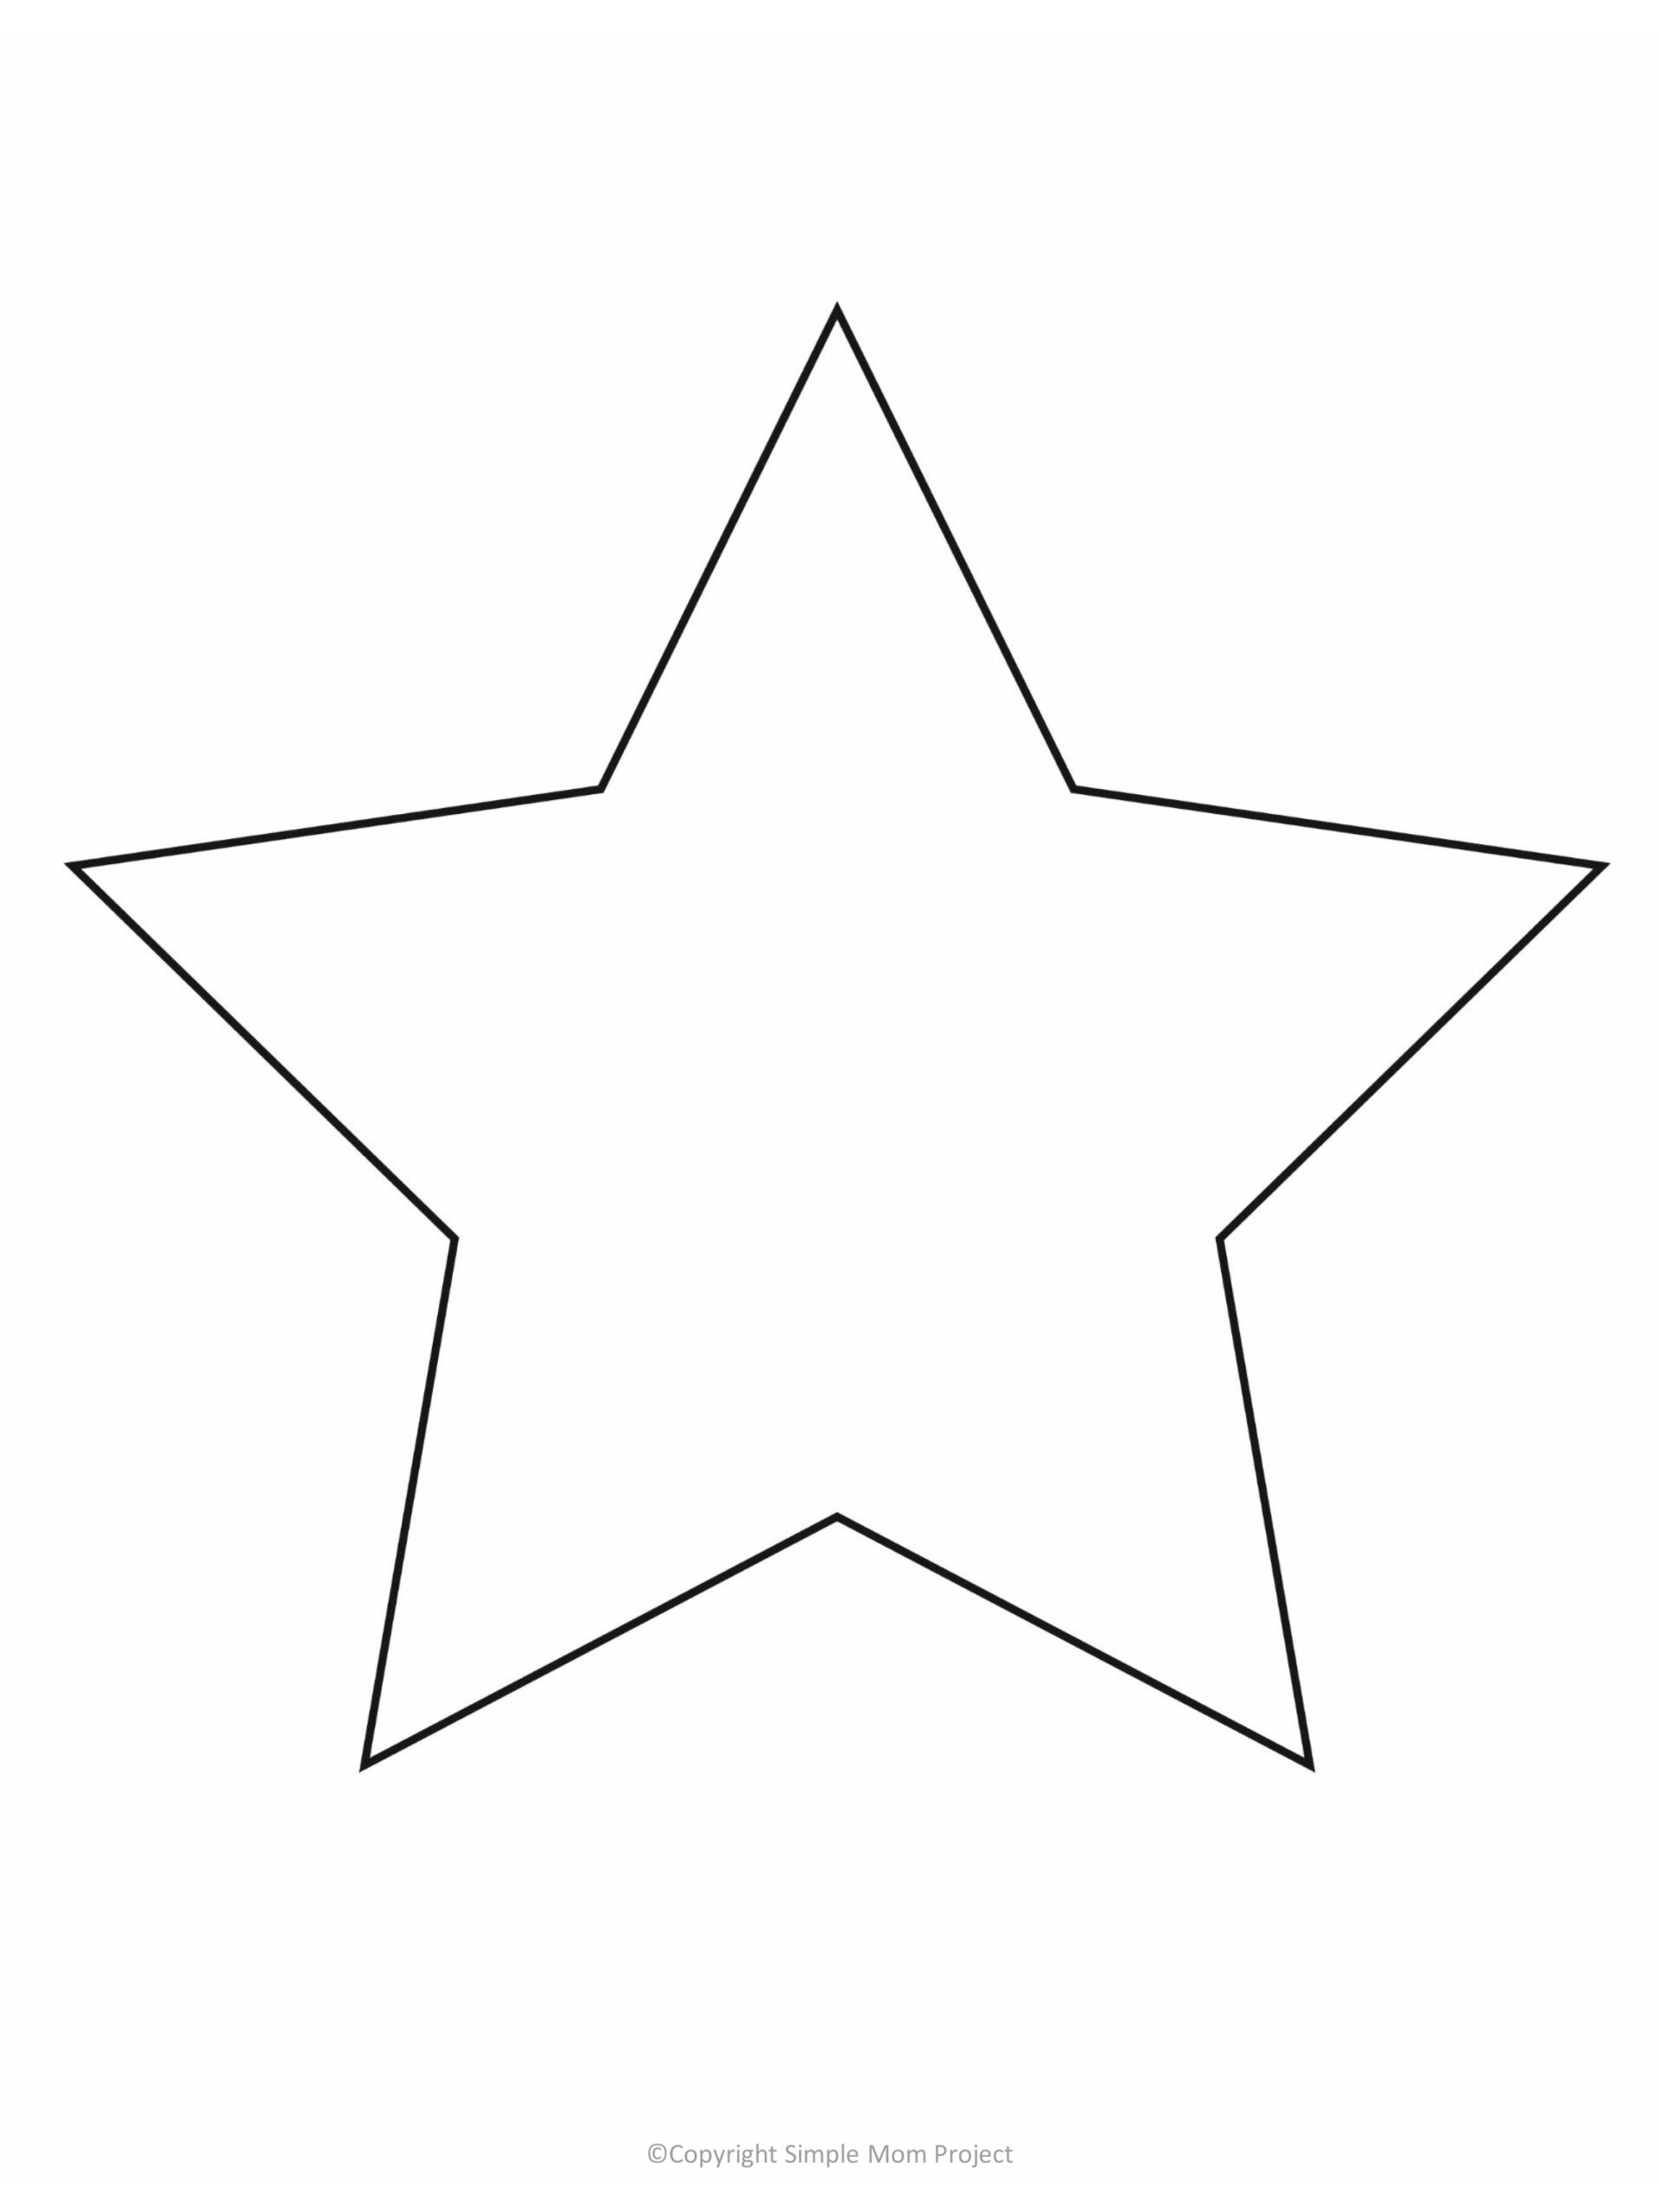 printable star template for preschoolers, toddlers and summer crafts